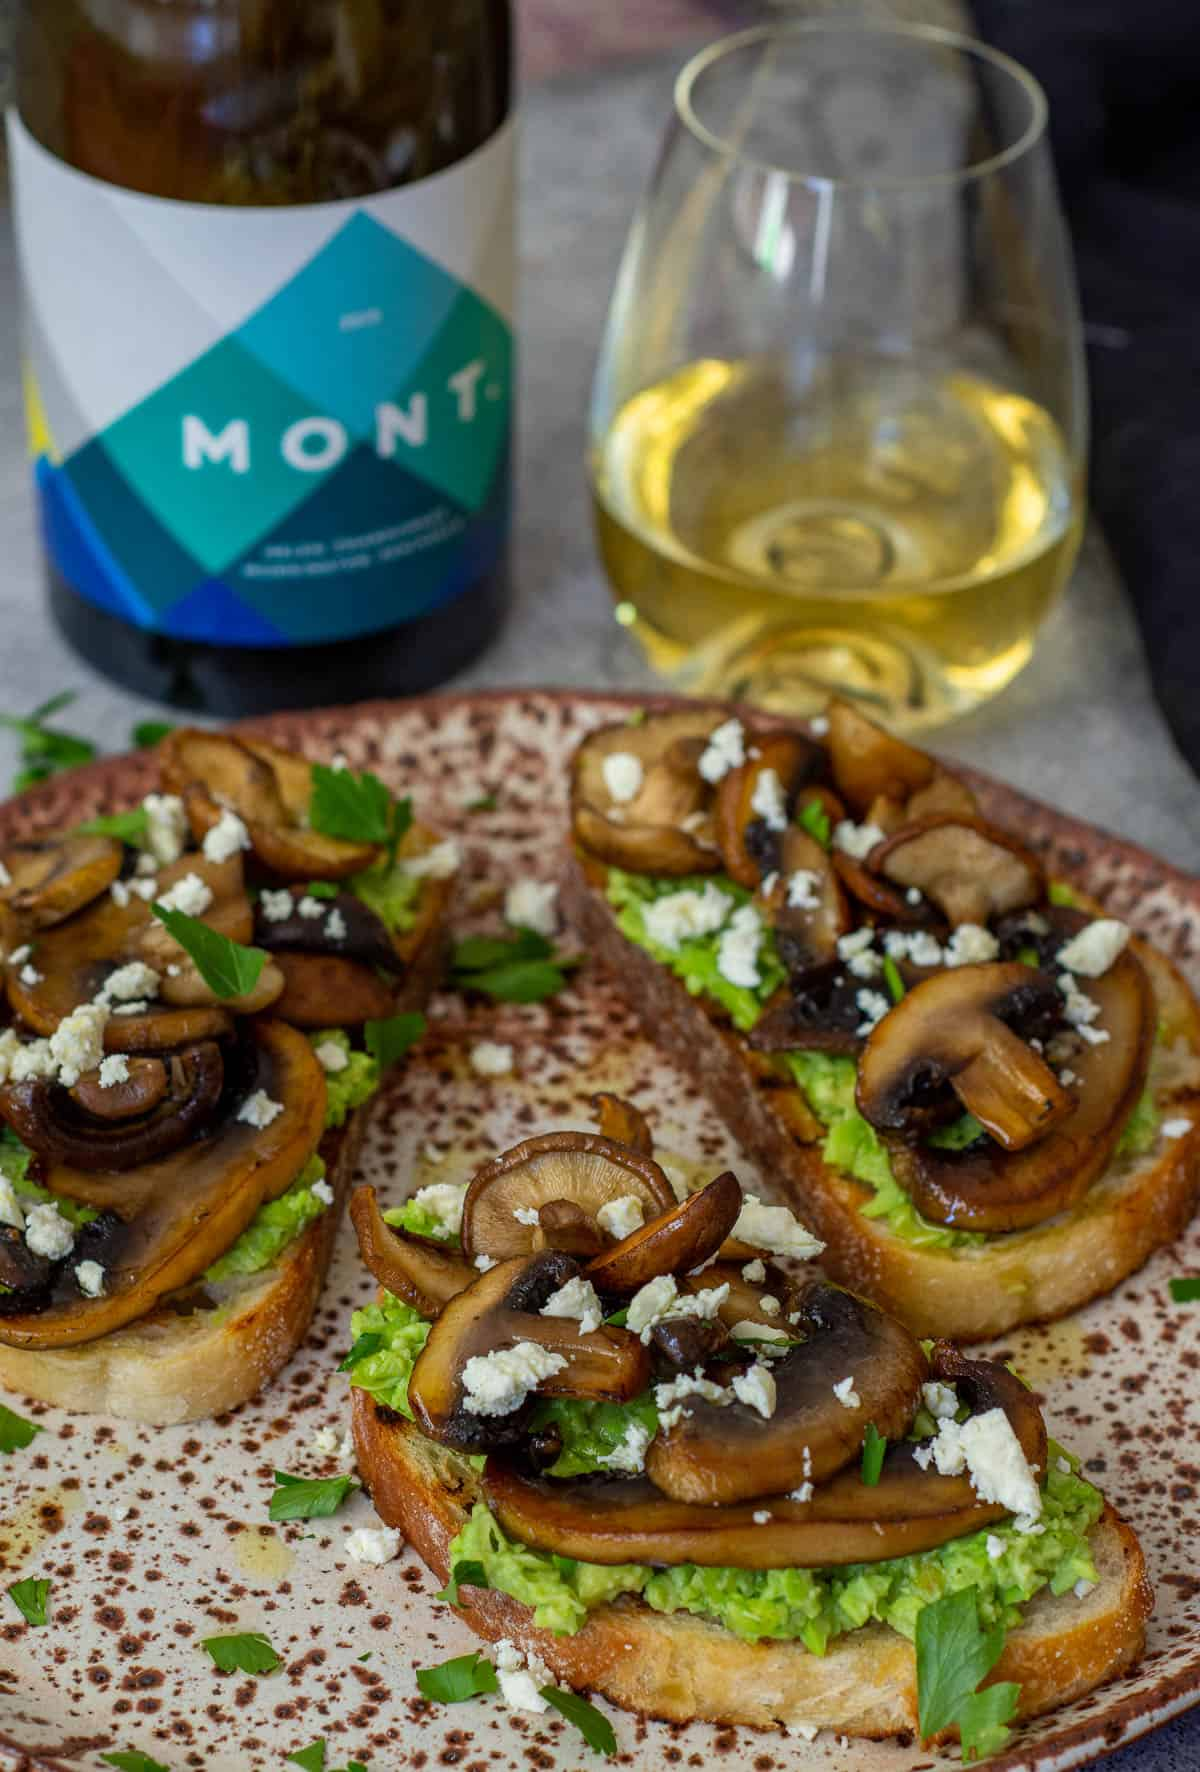 mushroom avocado toast on a plate with Mont chardonnay in background